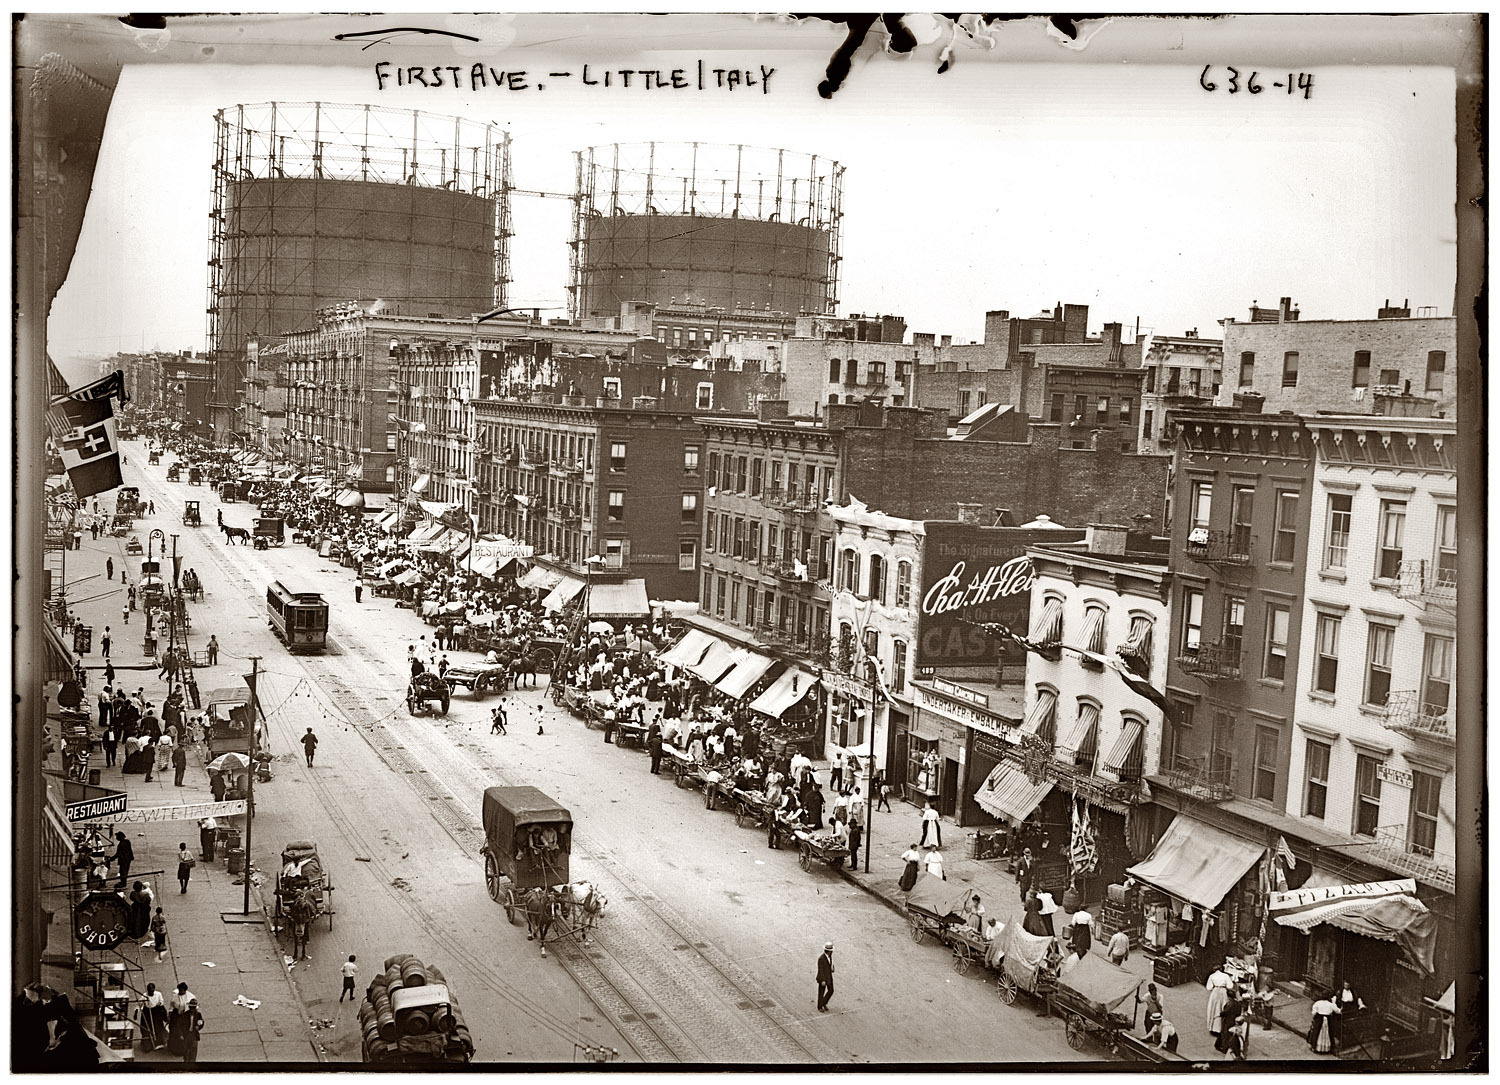 1st Ave and 29th Street Little Italy festa circa 1908.